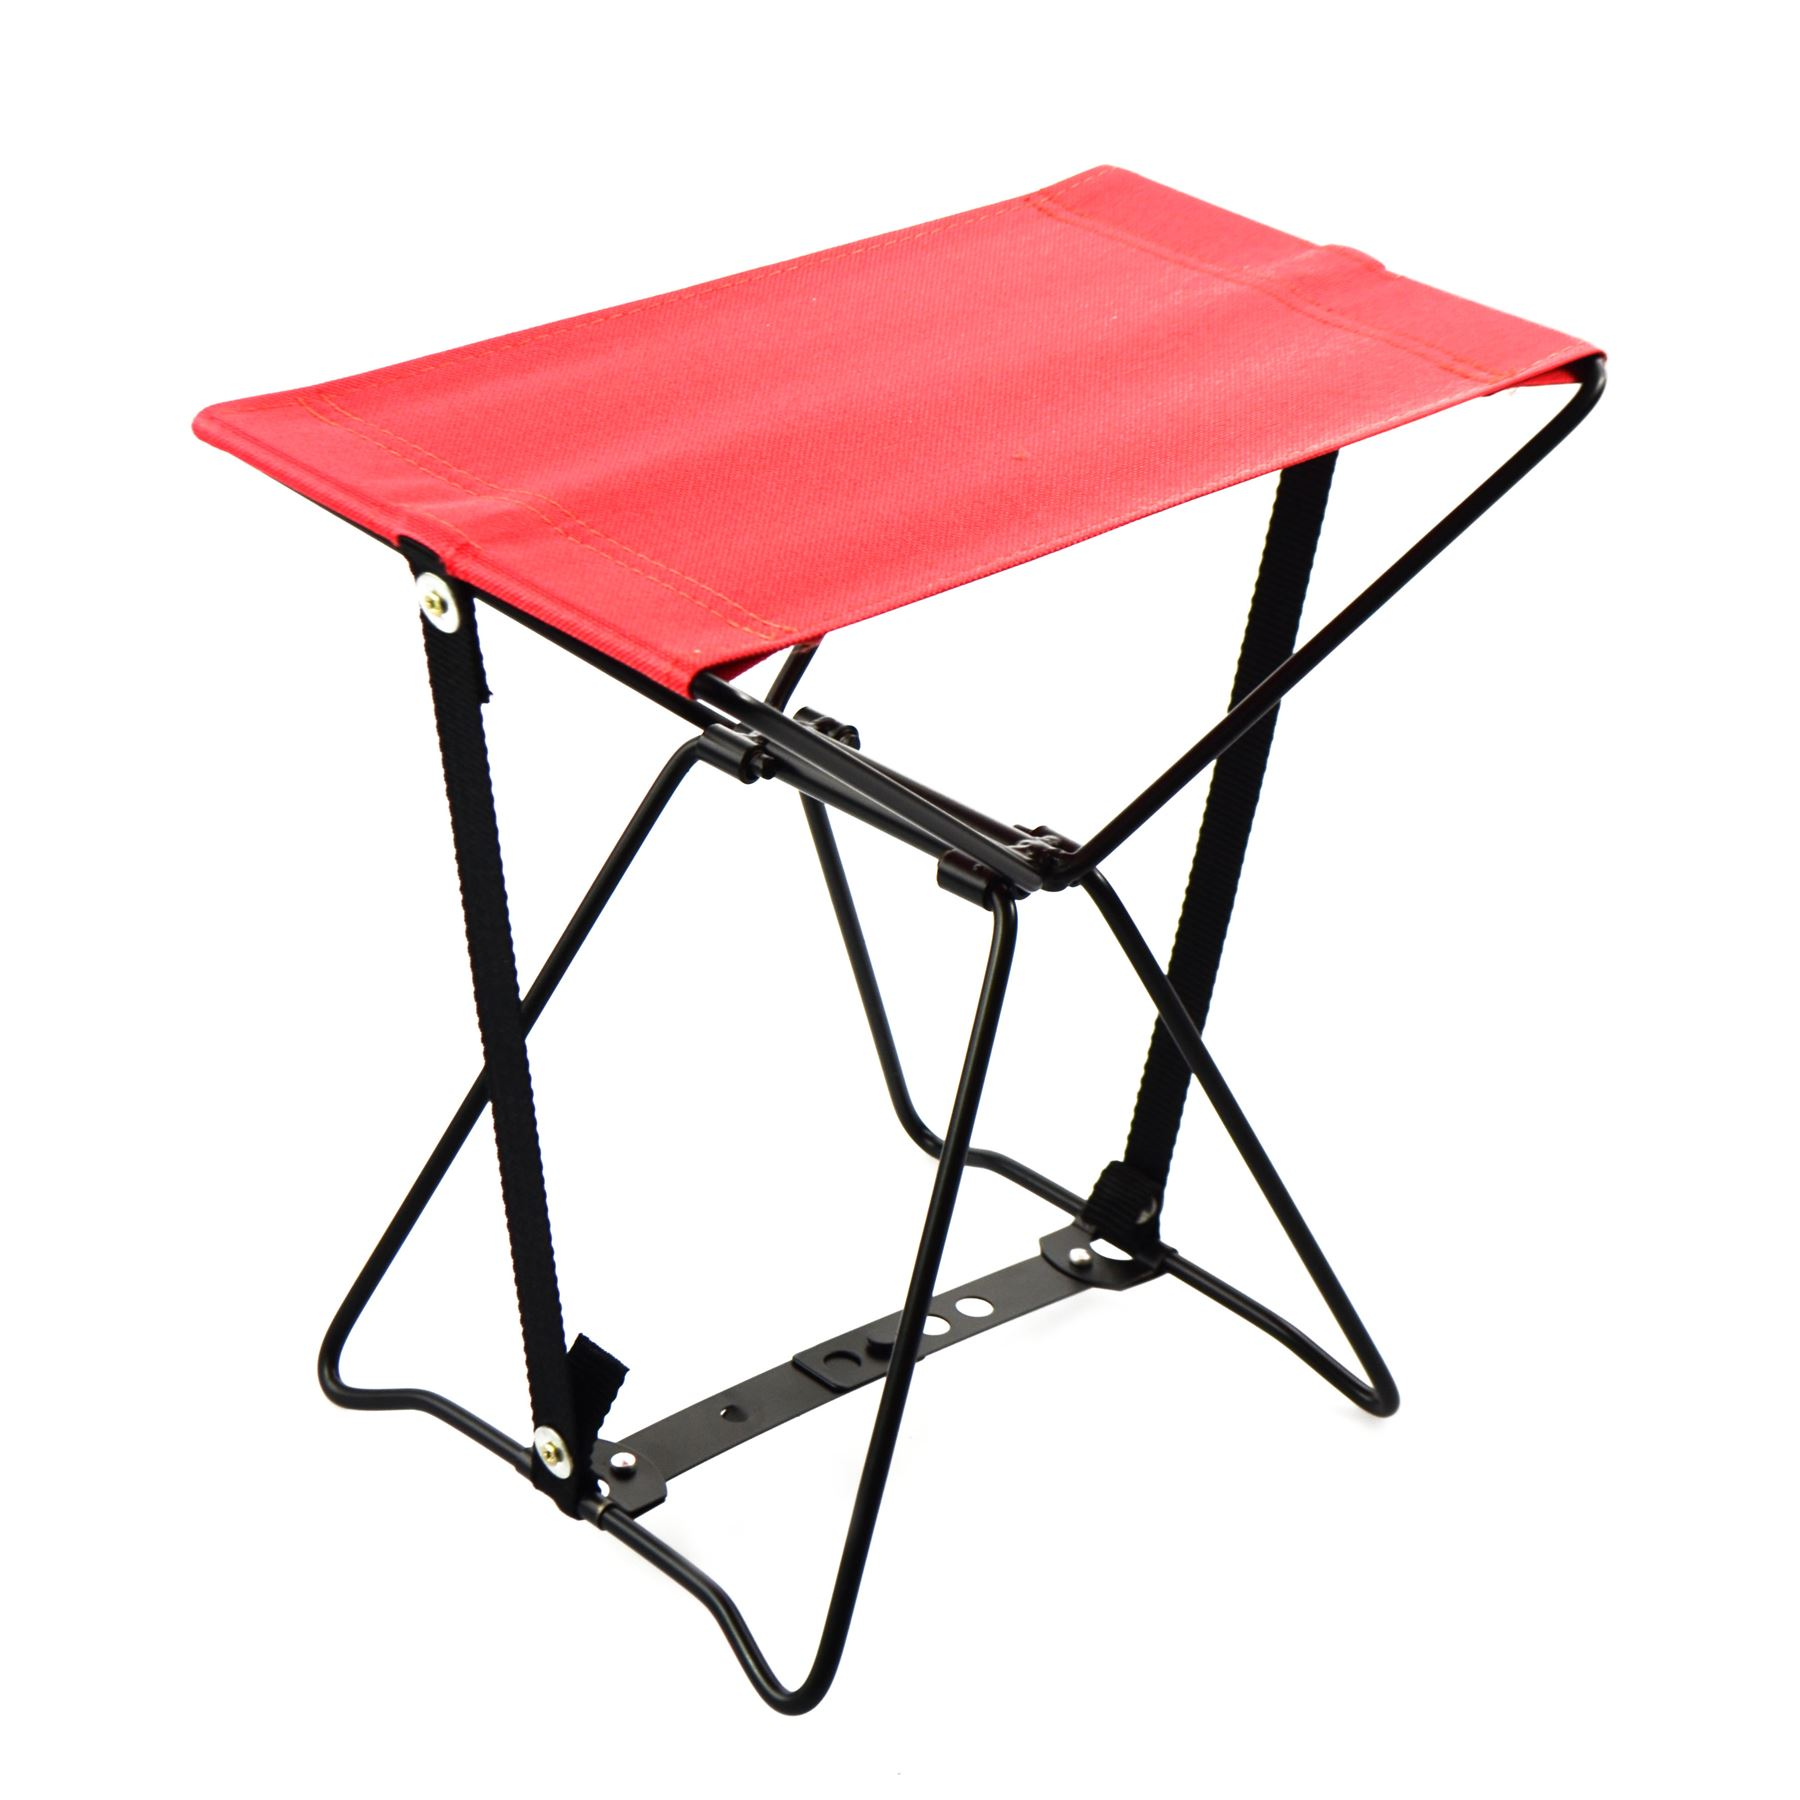 Folding camping pocket chair collapsible garden outdoor for Fold up garden chairs